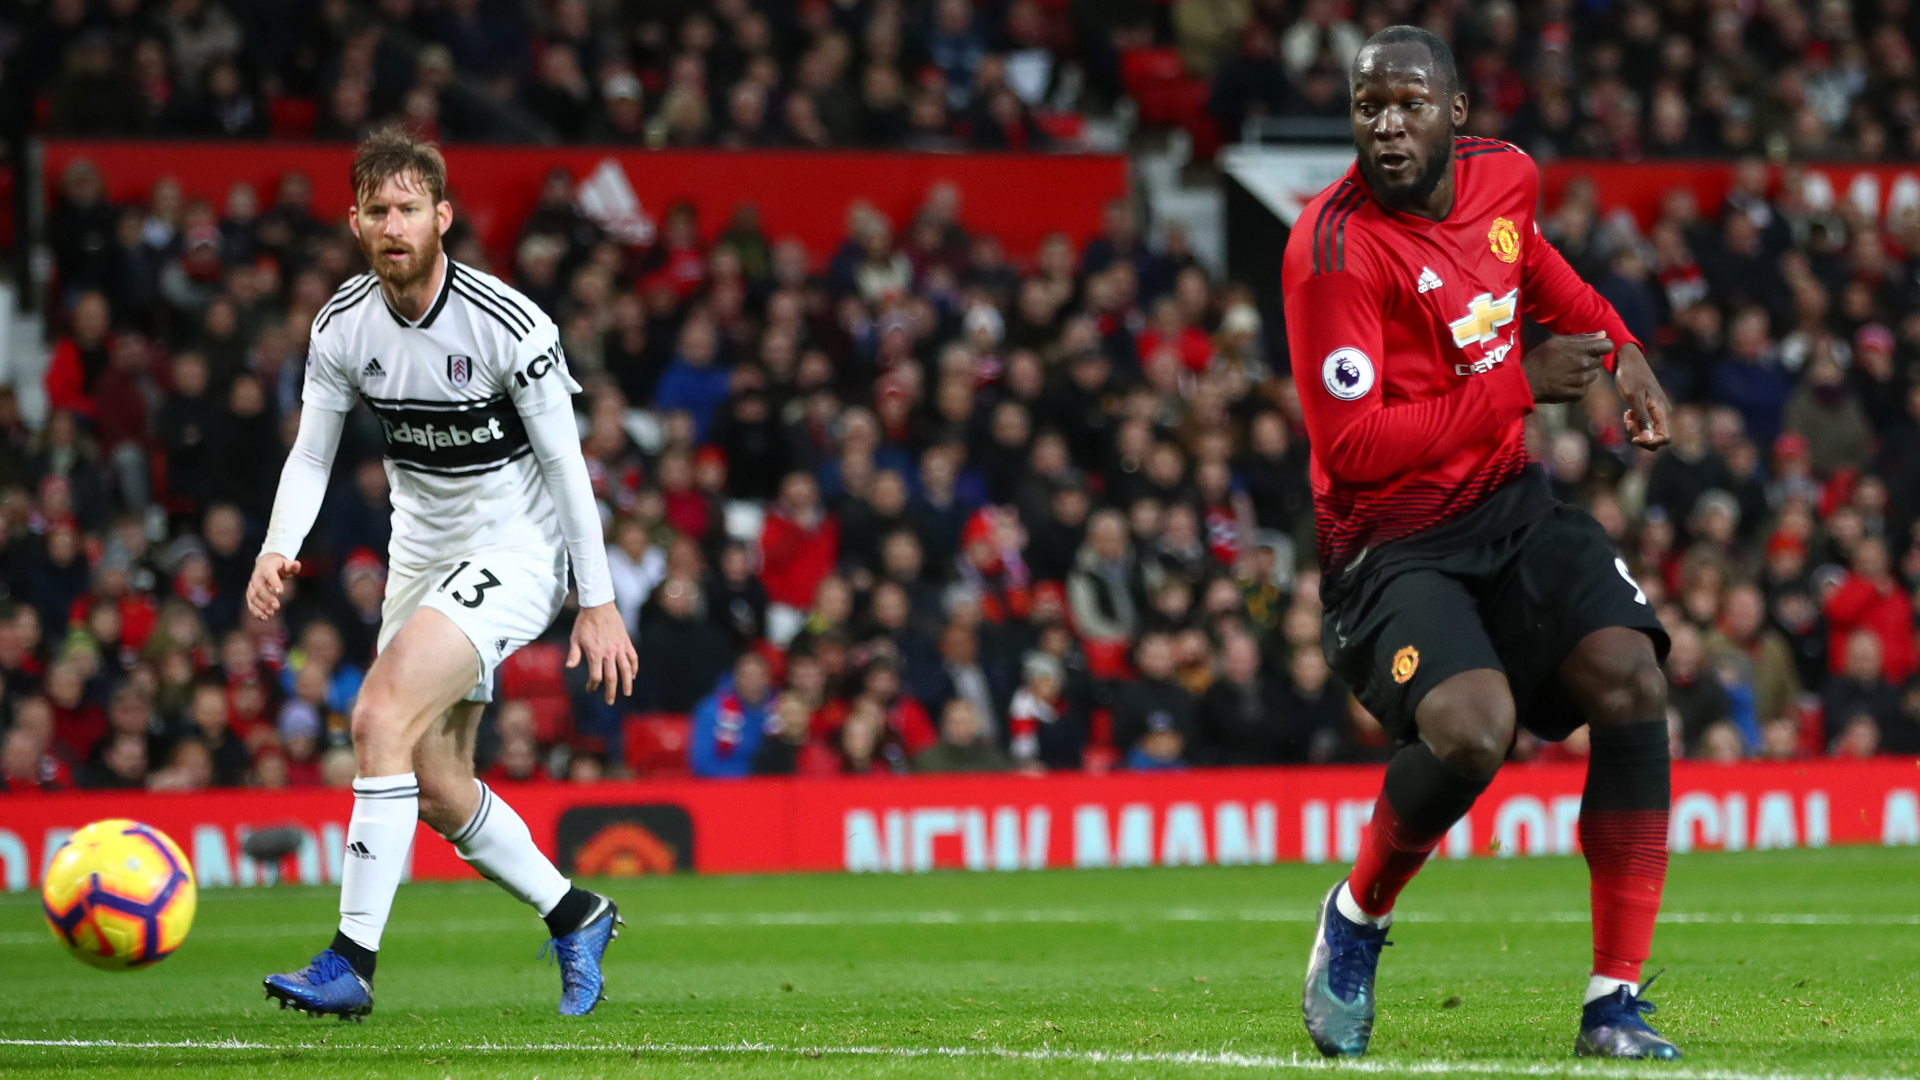 Fulham vs. Manchester United - Football Match Report